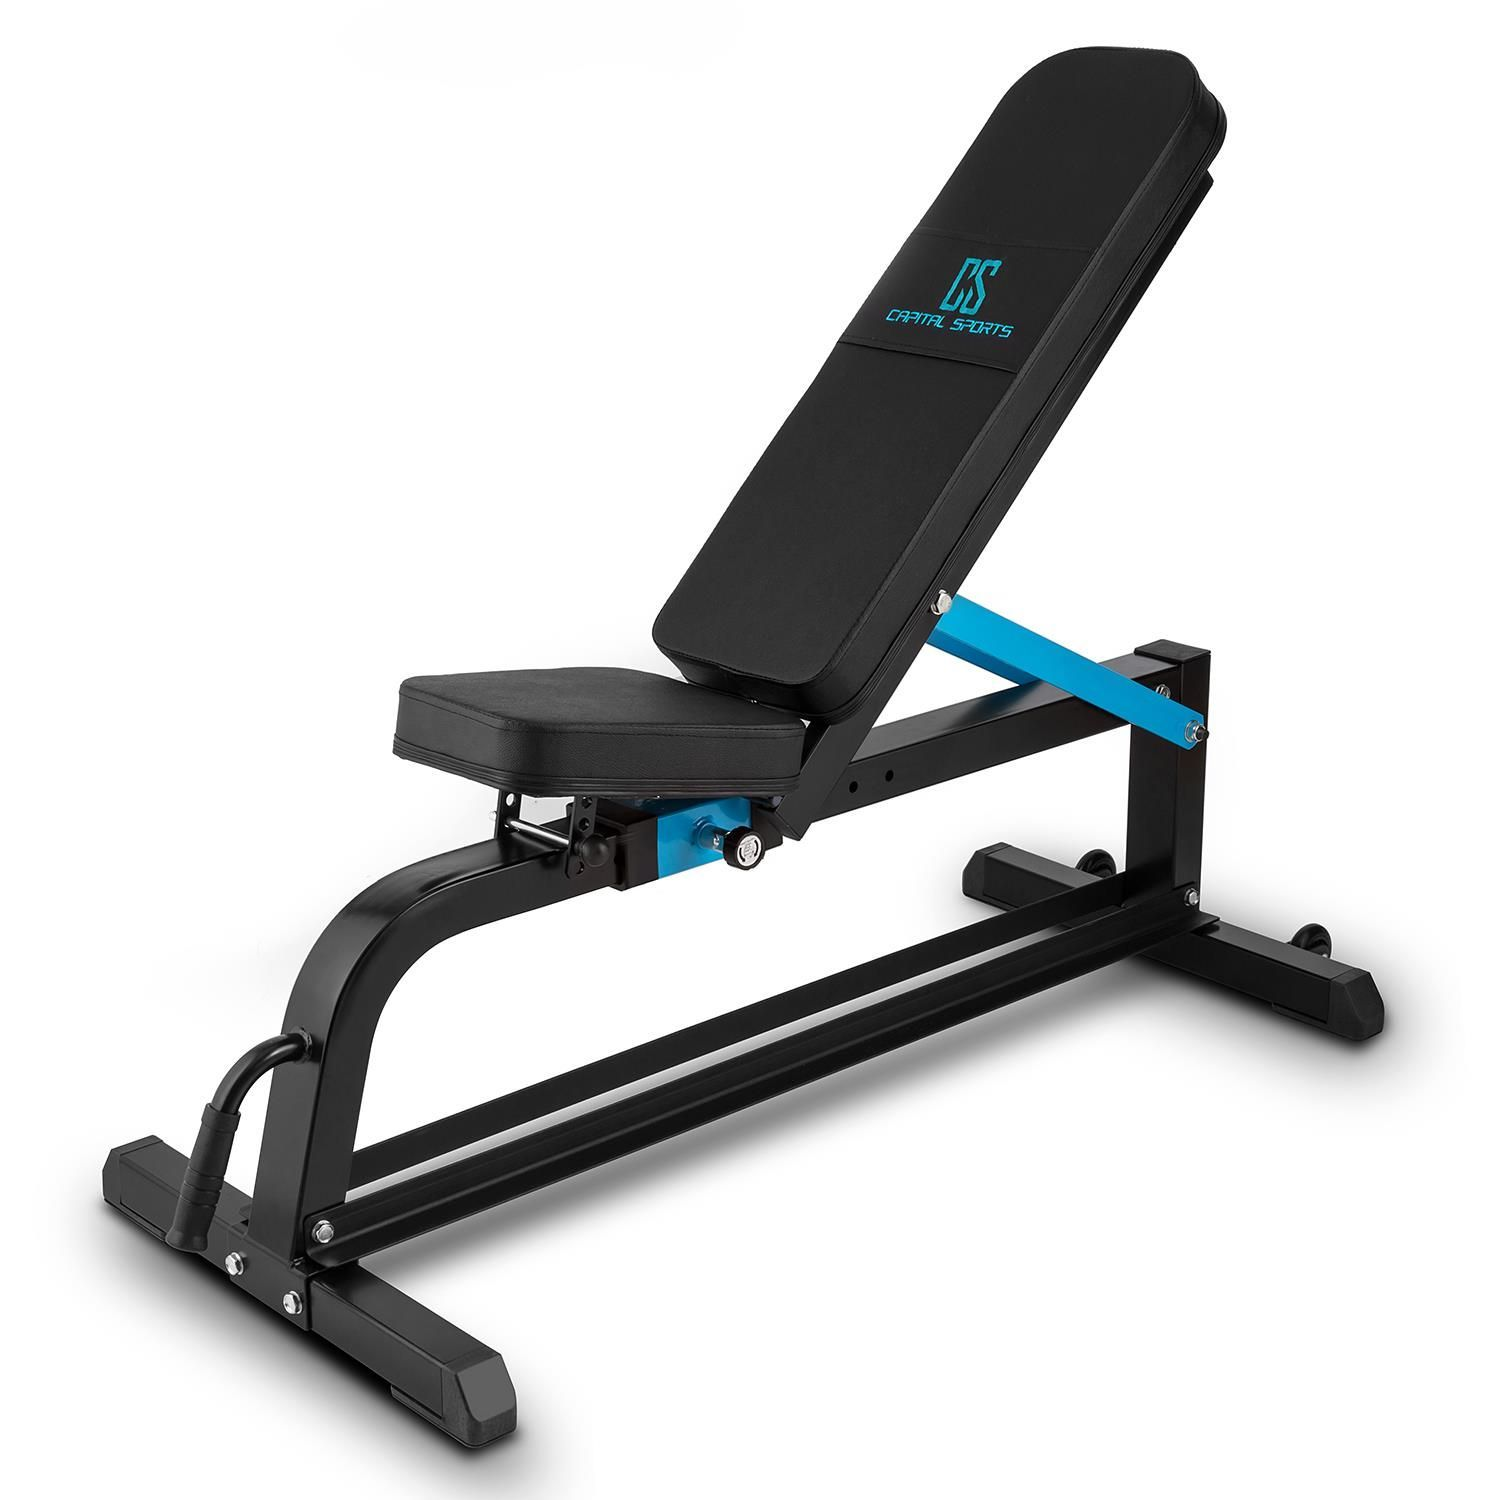 Capital Sports Ad Just Banc De Musculation Modulable Pour Exercices Avec Surface Rembourrée De 5cm